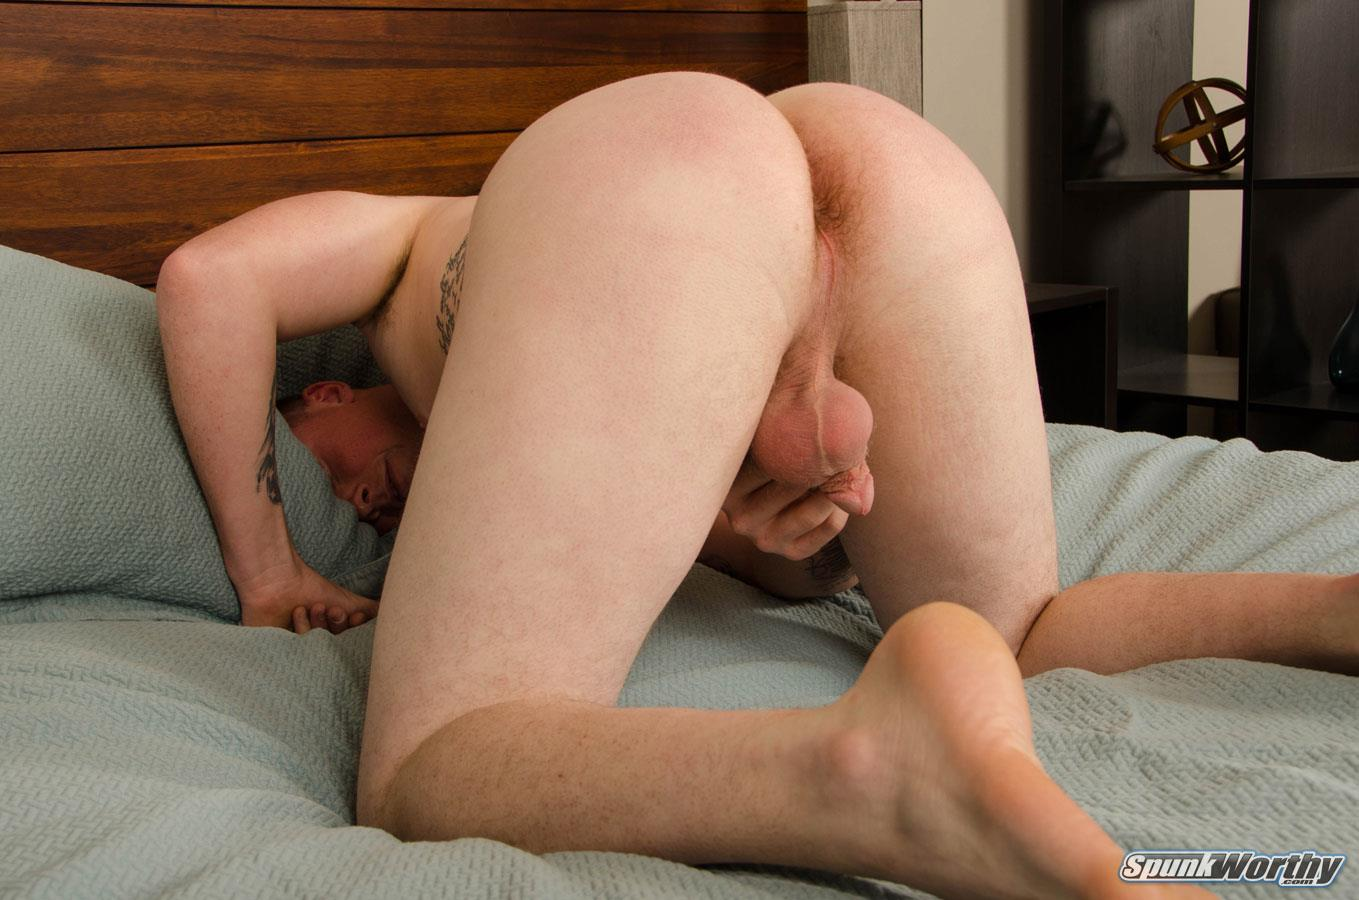 SpunkWorthy-Bryson-Marine-Gets-A-HandJob-From-Another-Guy-13 Redheaded Marine Gets Jerked Off By A Guy While His Wife Watches